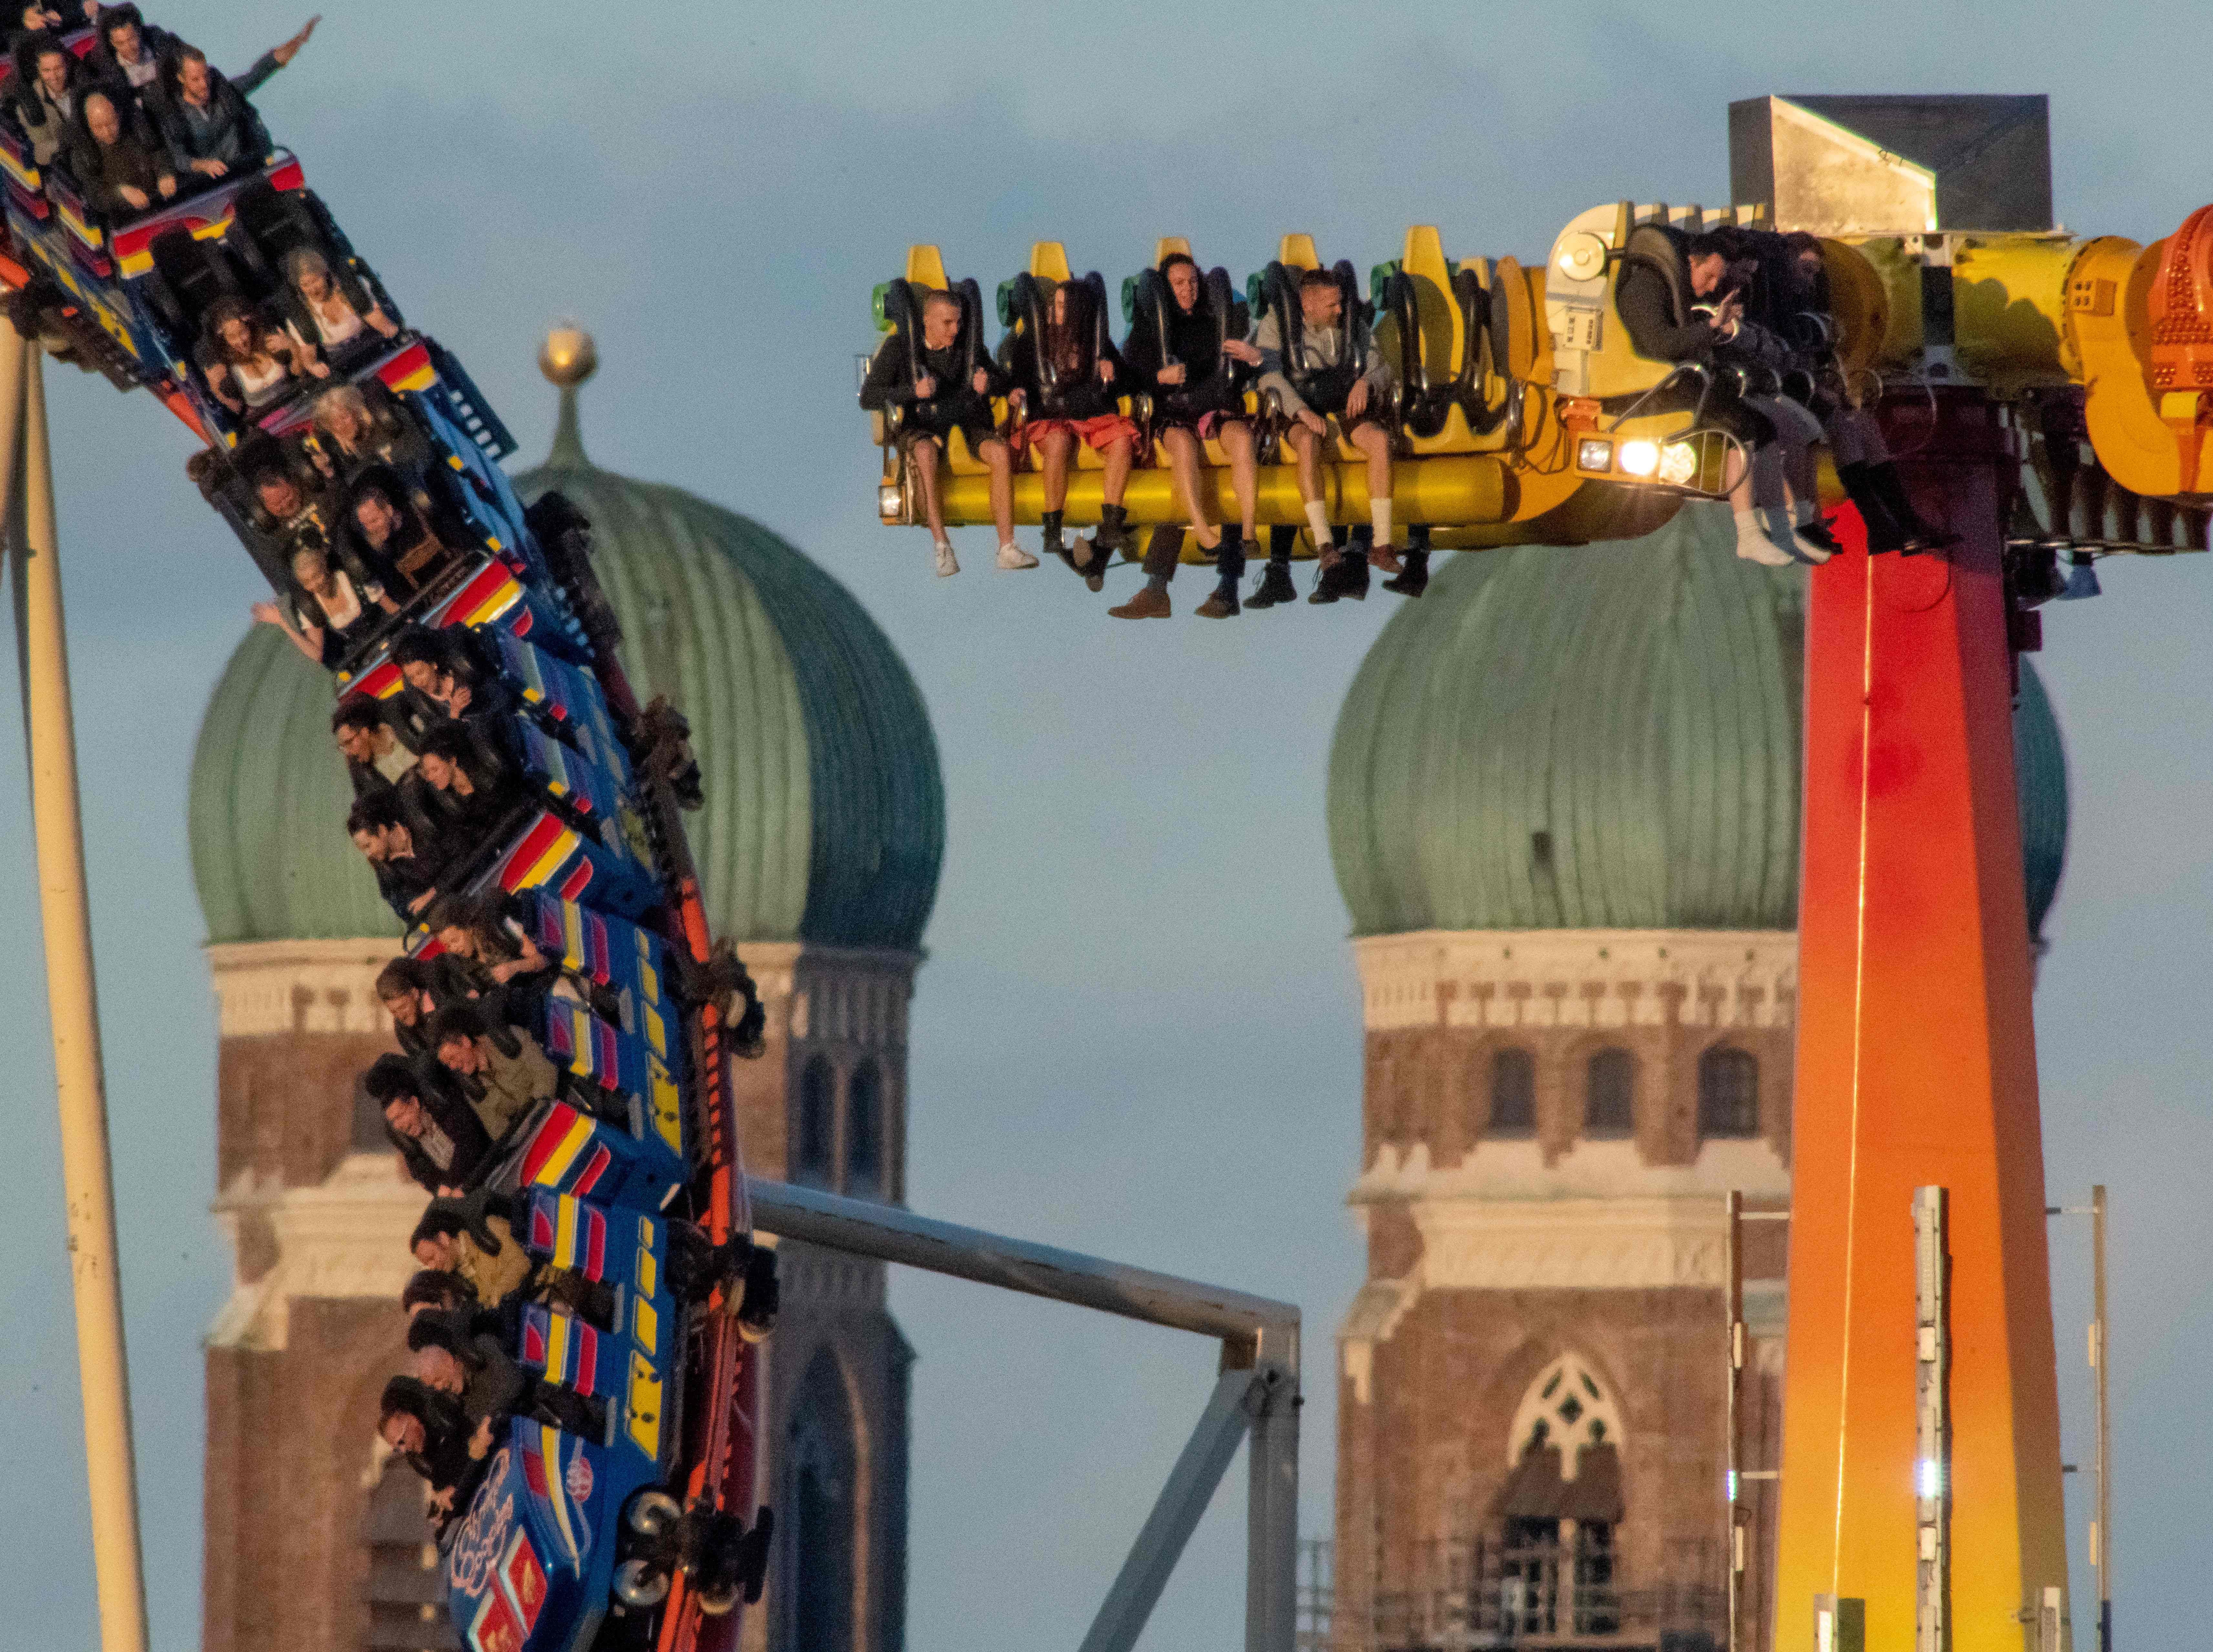 Visitors ride a rollercoaster at the Theresienwiese fair ground with the Frauenkirche (Cathedral of Our Lady) in the background at the Oktoberfest beer festival in Munich, southern Germany, on Sept. 24, 2018.